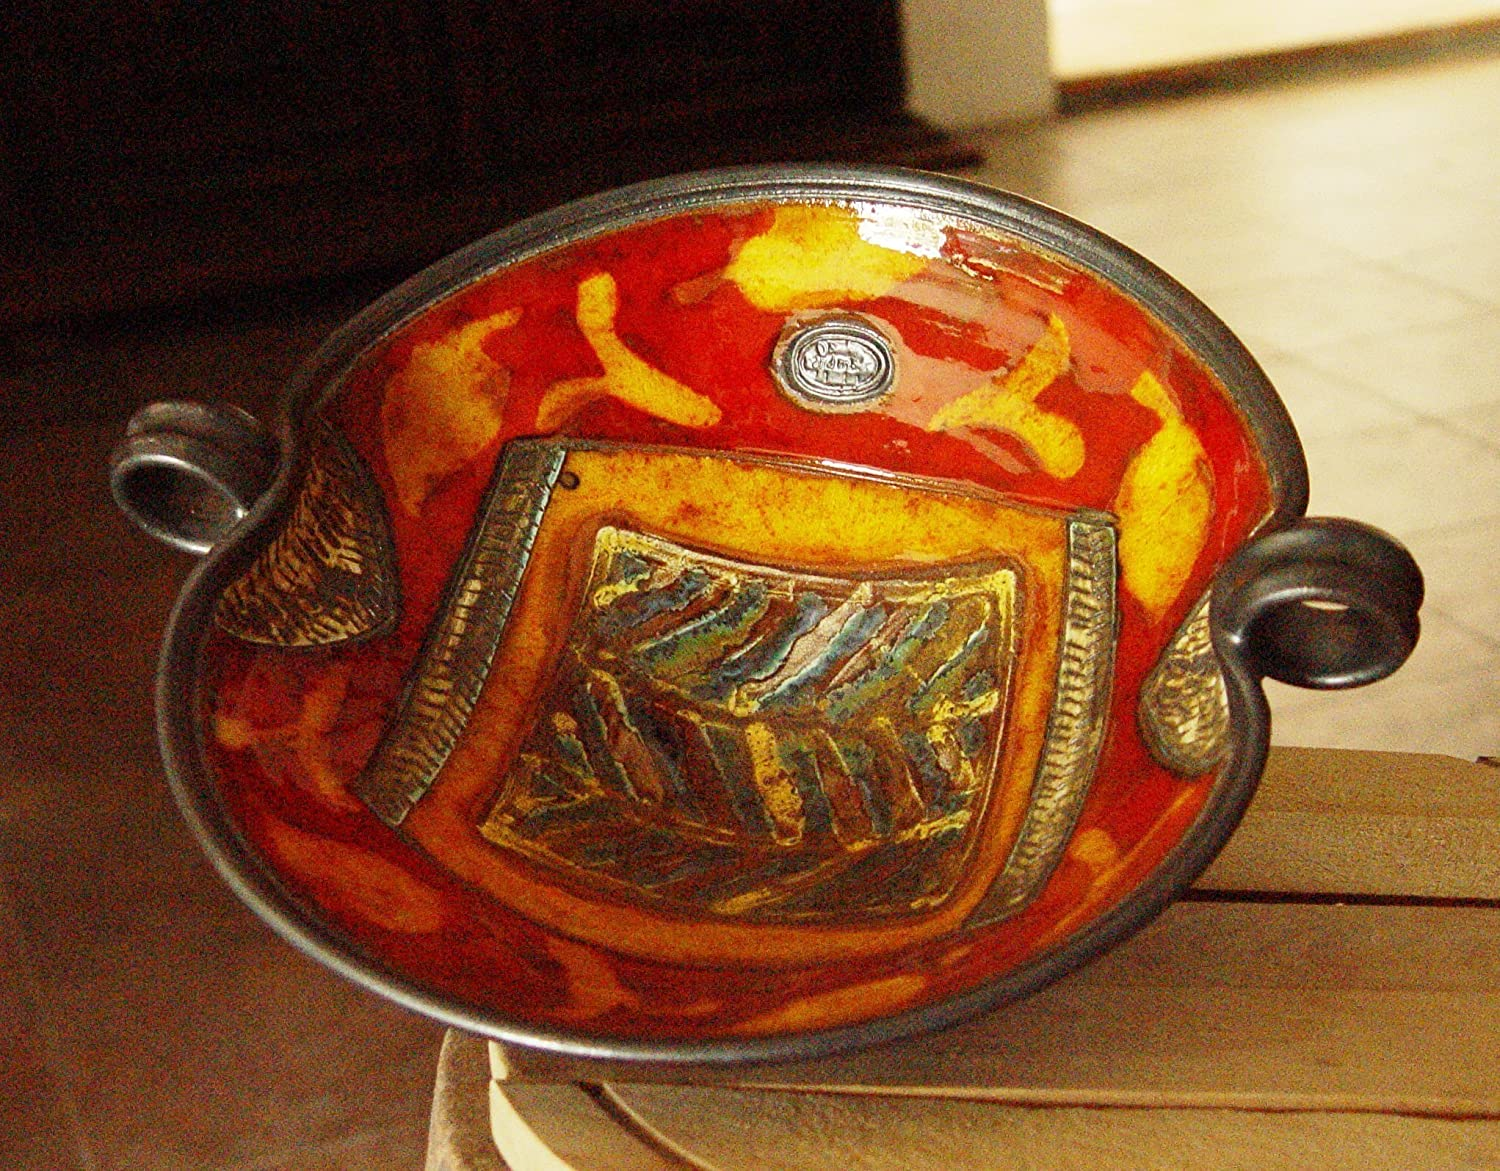 Pottery Fruit Bowl with Hand Painted Decoration. Wheel Thrown Pottery Bowl